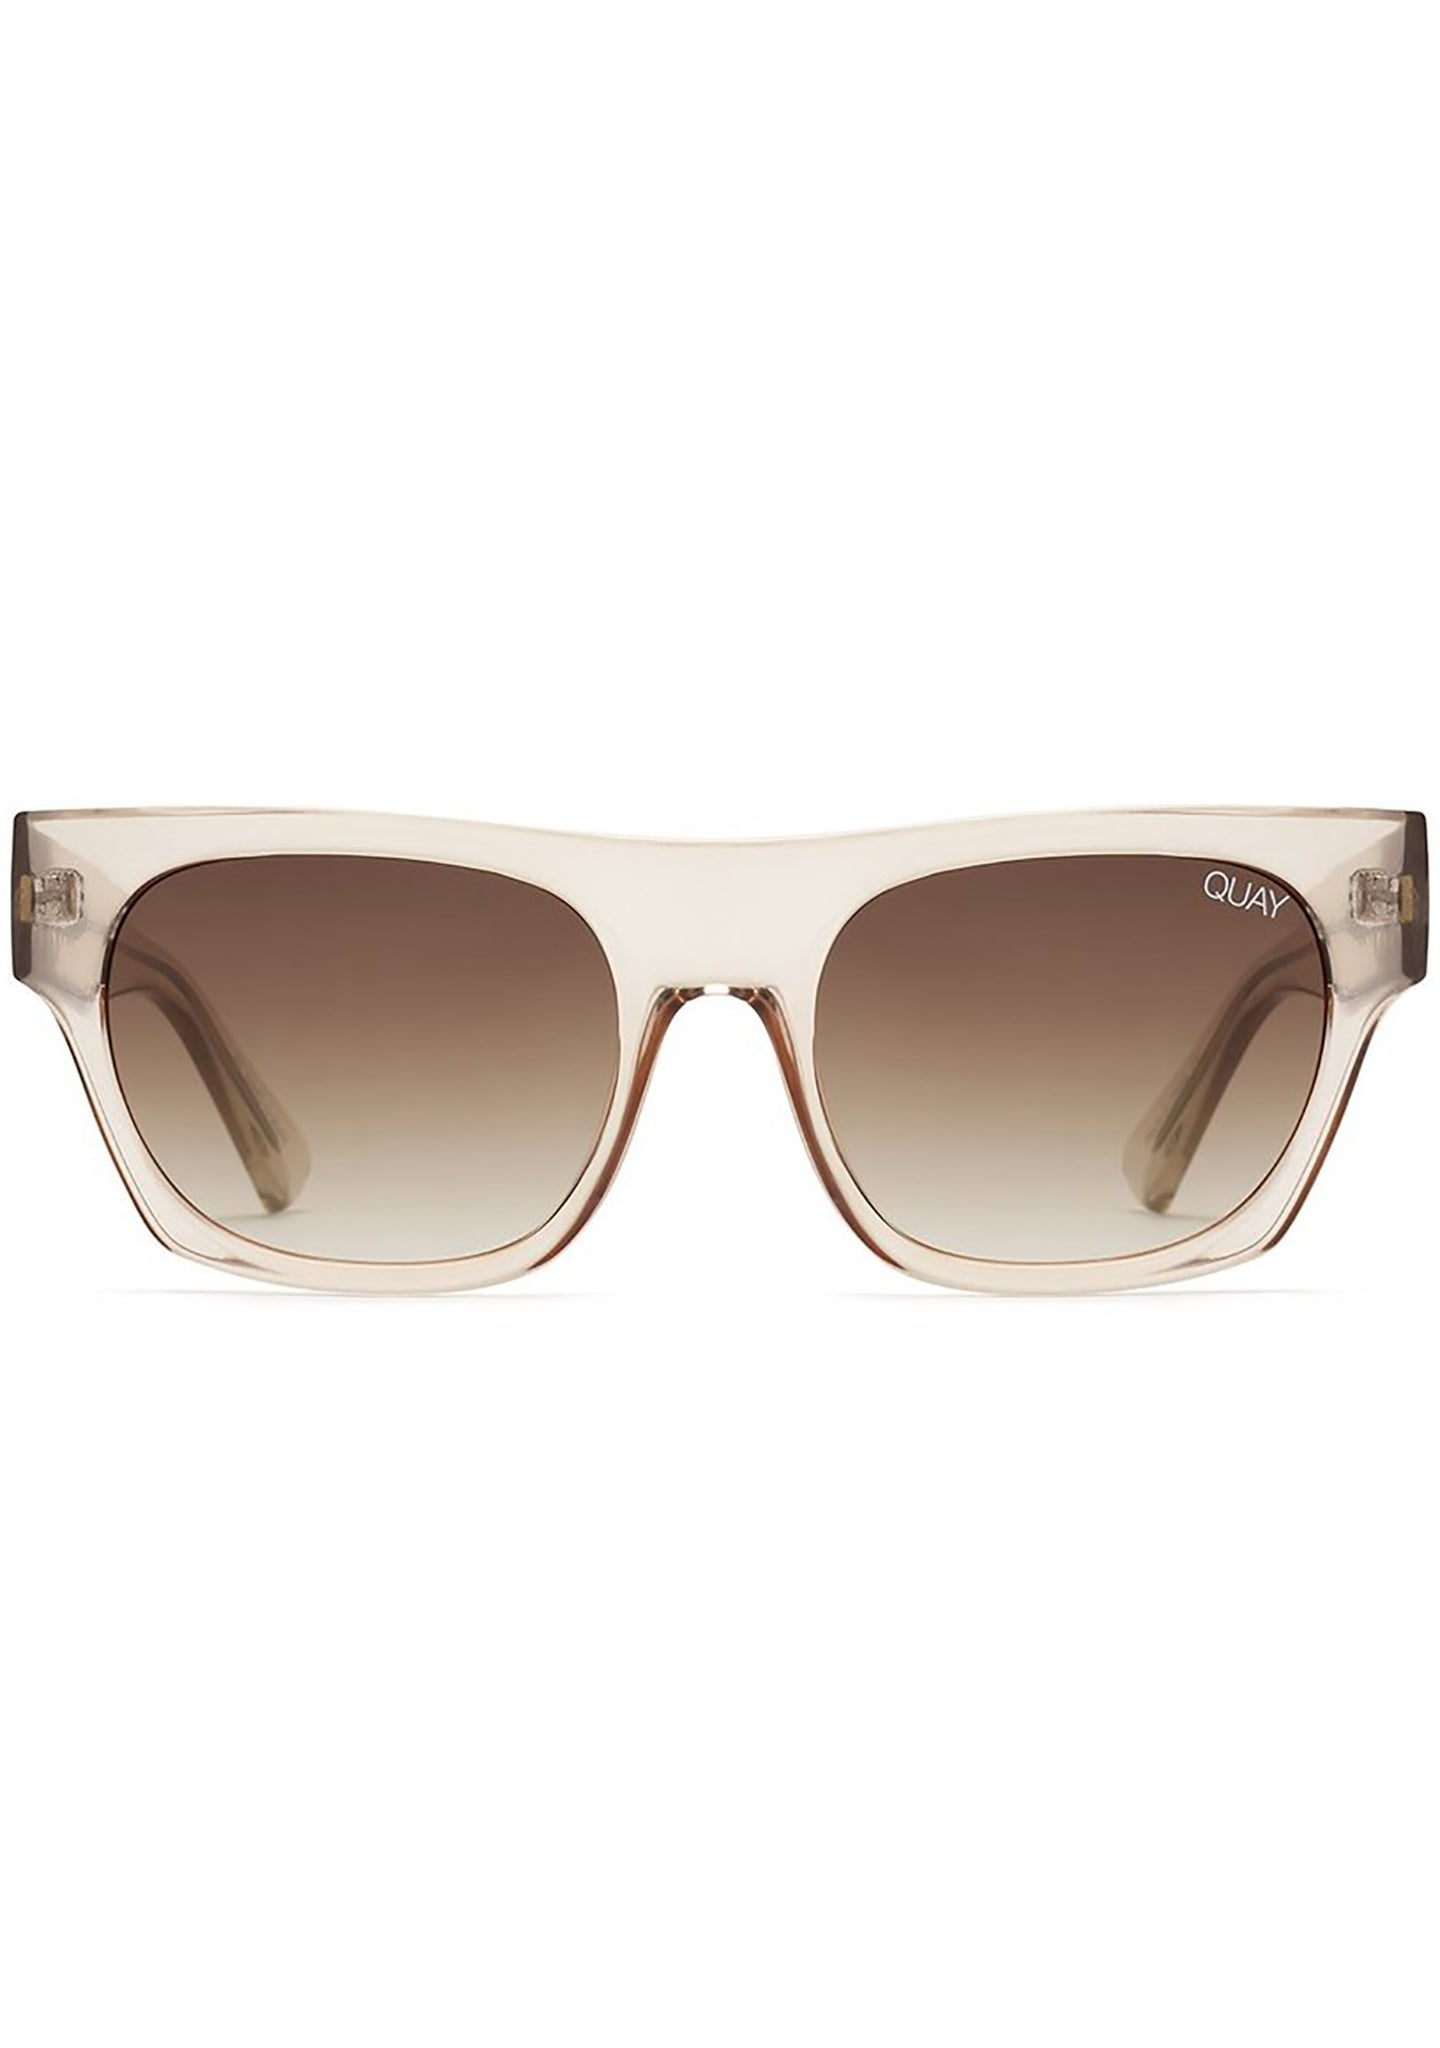 Something Extra Sunglasses in Champagne/Gold